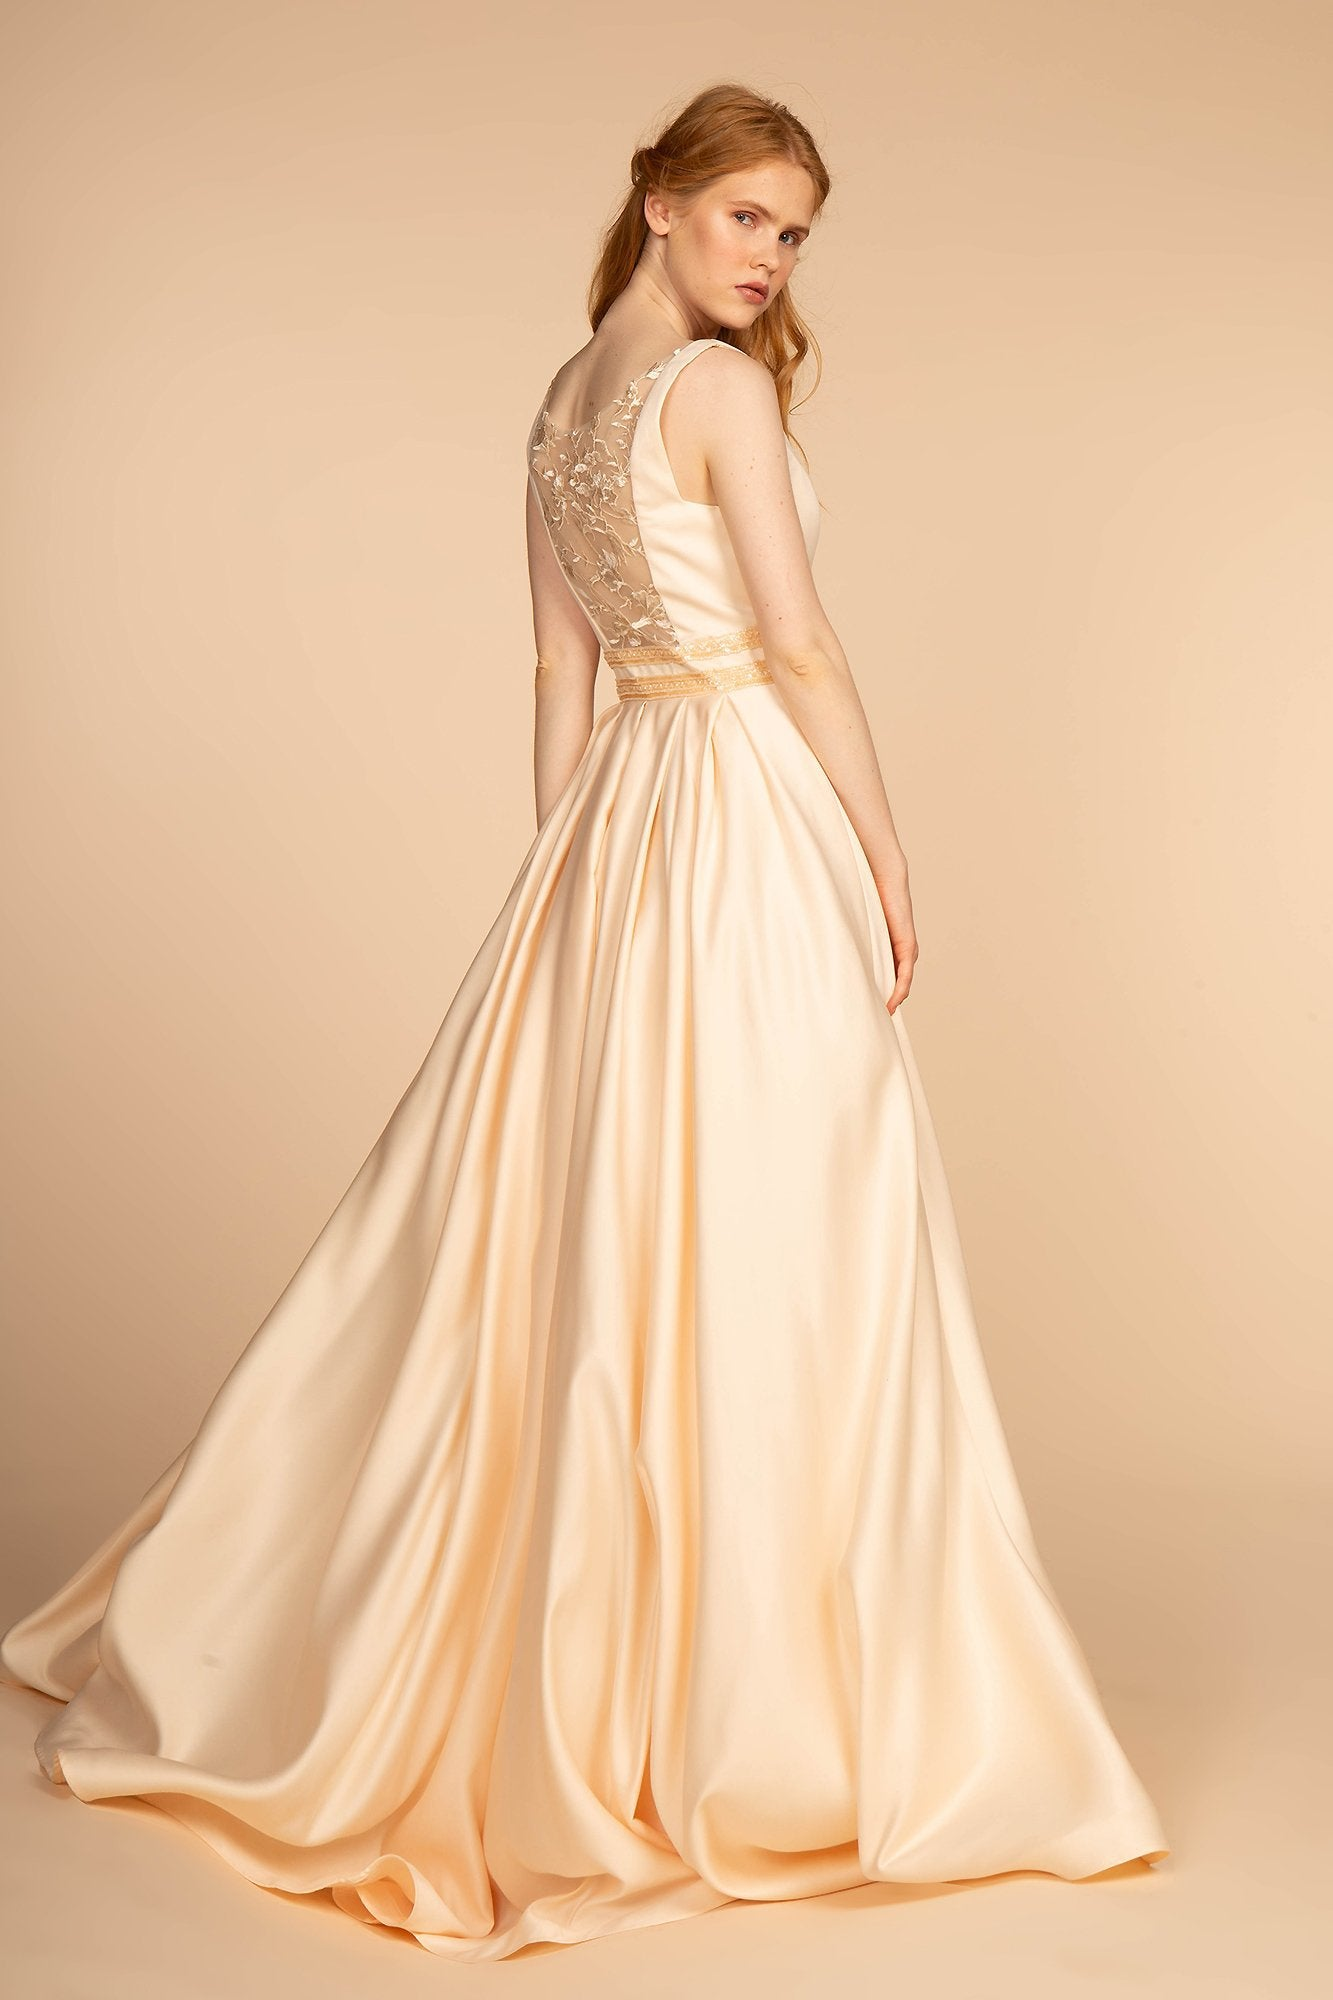 Elizabeth K - GL2531 Sleeveless Sheer Lace Applique Back Satin Gown In Yellow